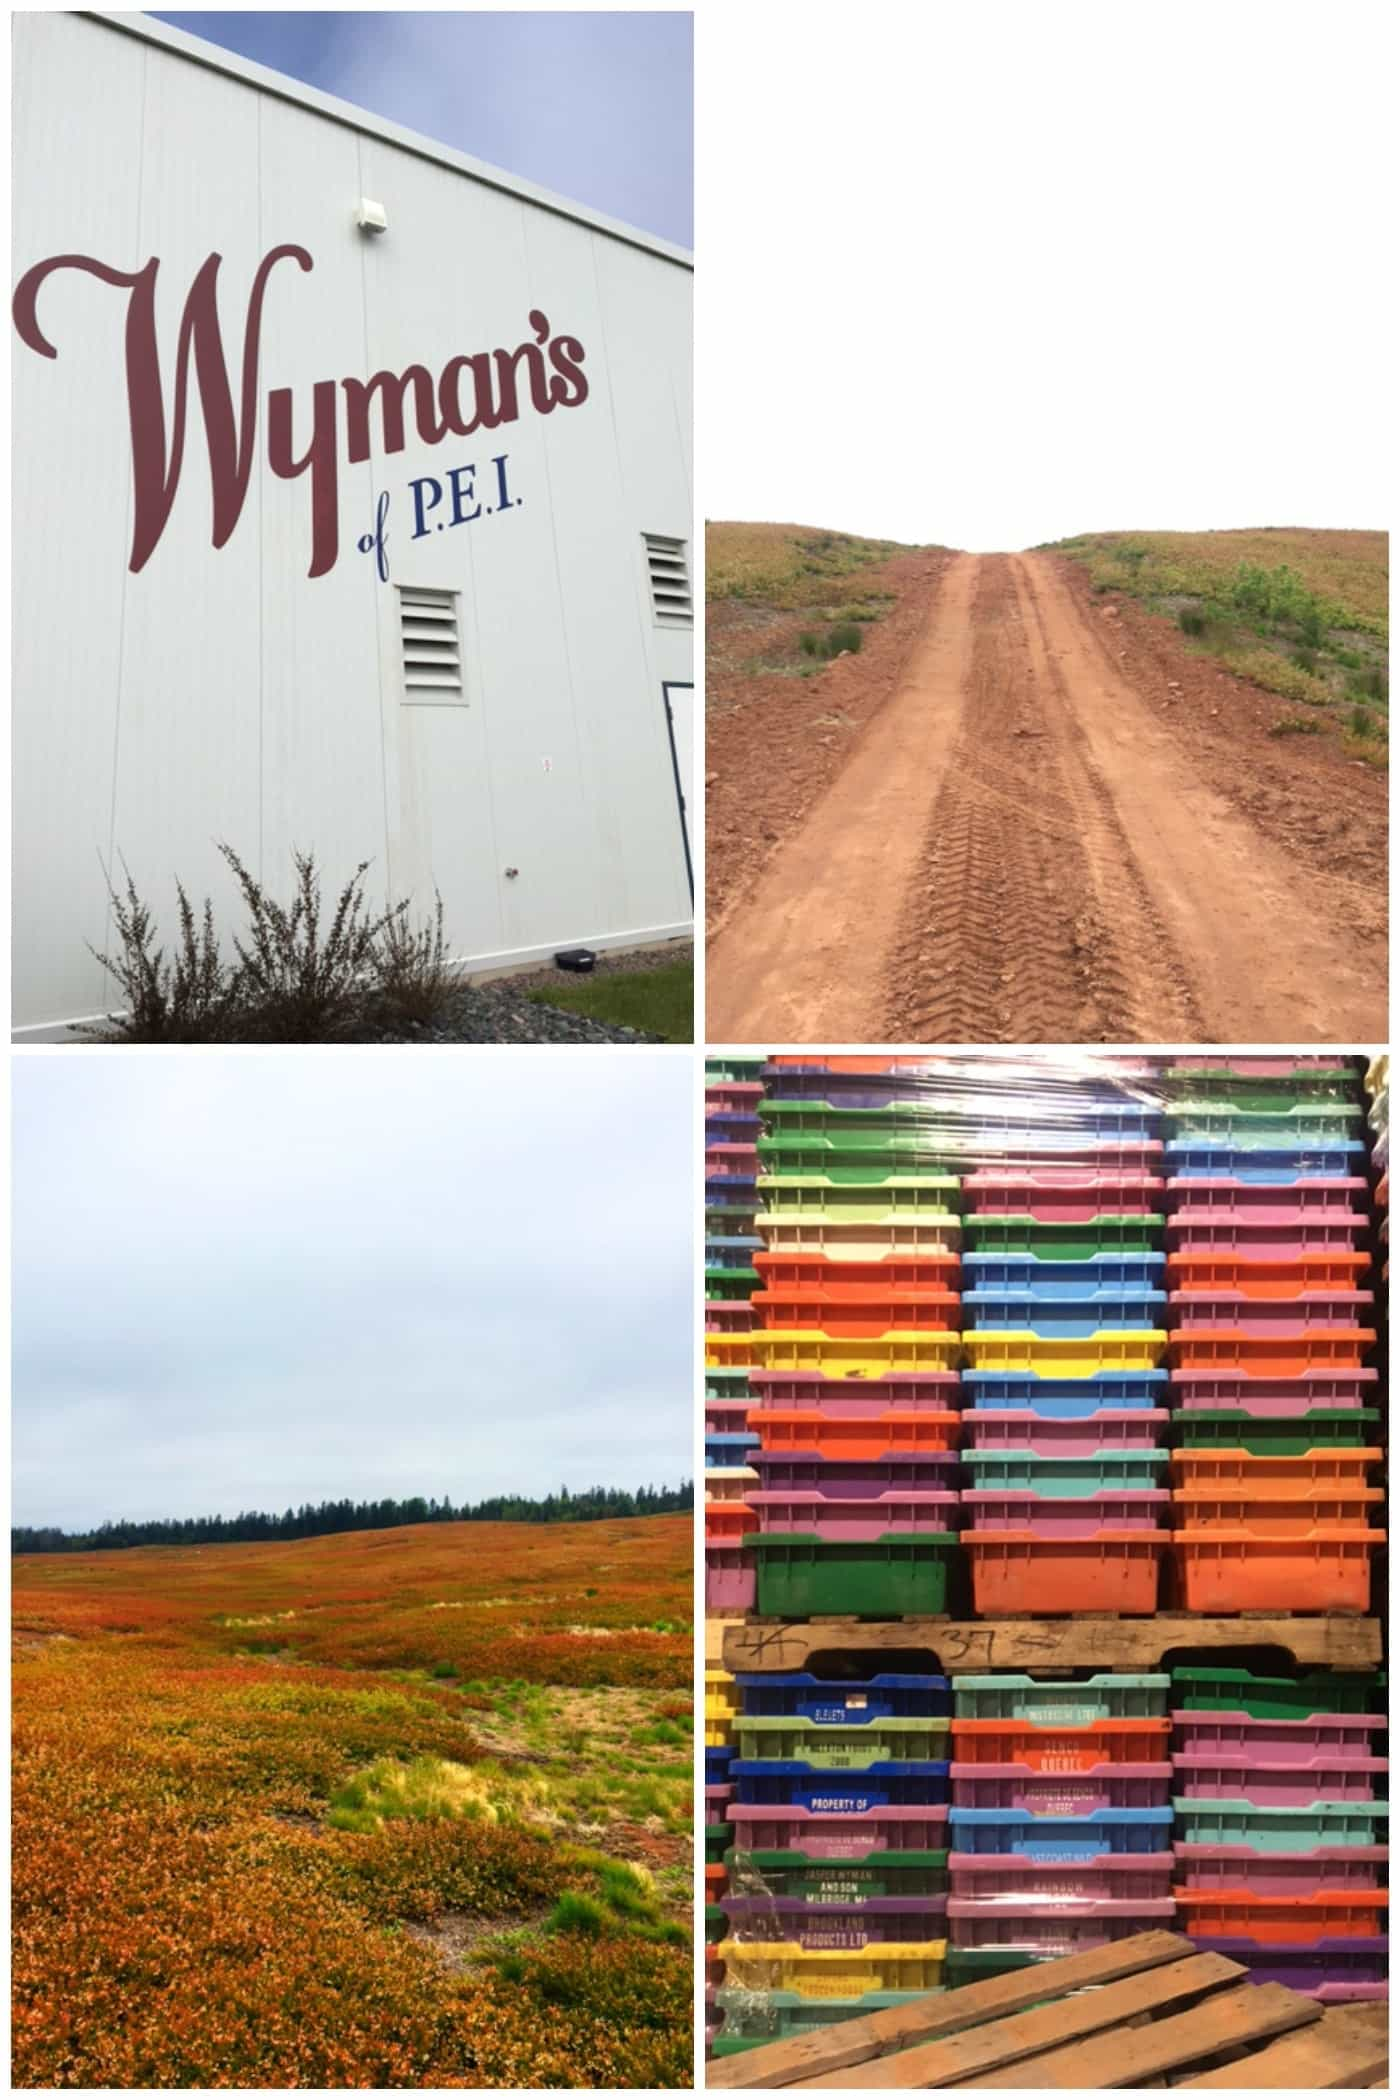 Traveling to Prince Edward Island with Wyman's of Maine to learn about wild blueberries!